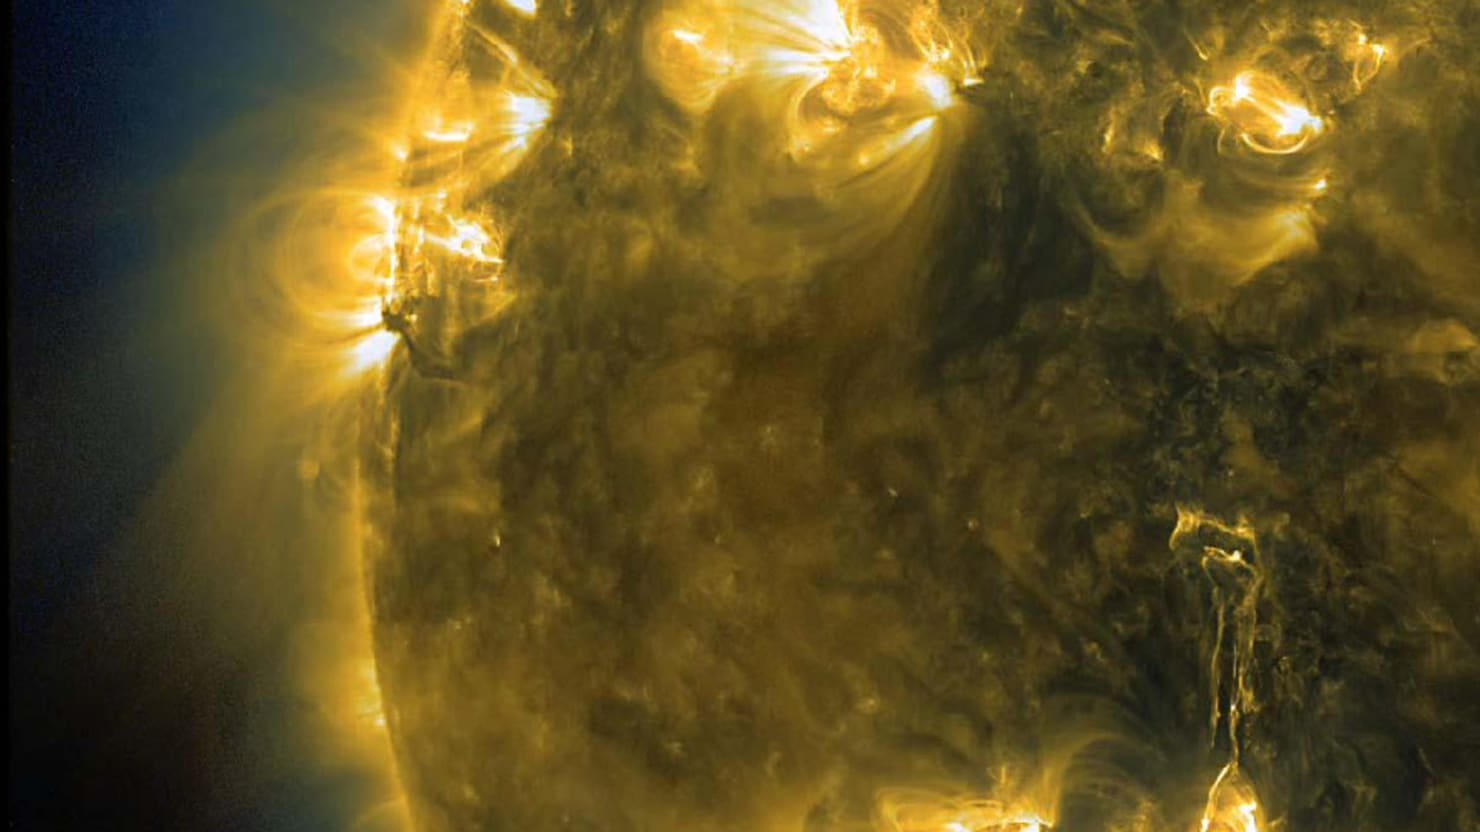 solar storm good or bad - photo #37